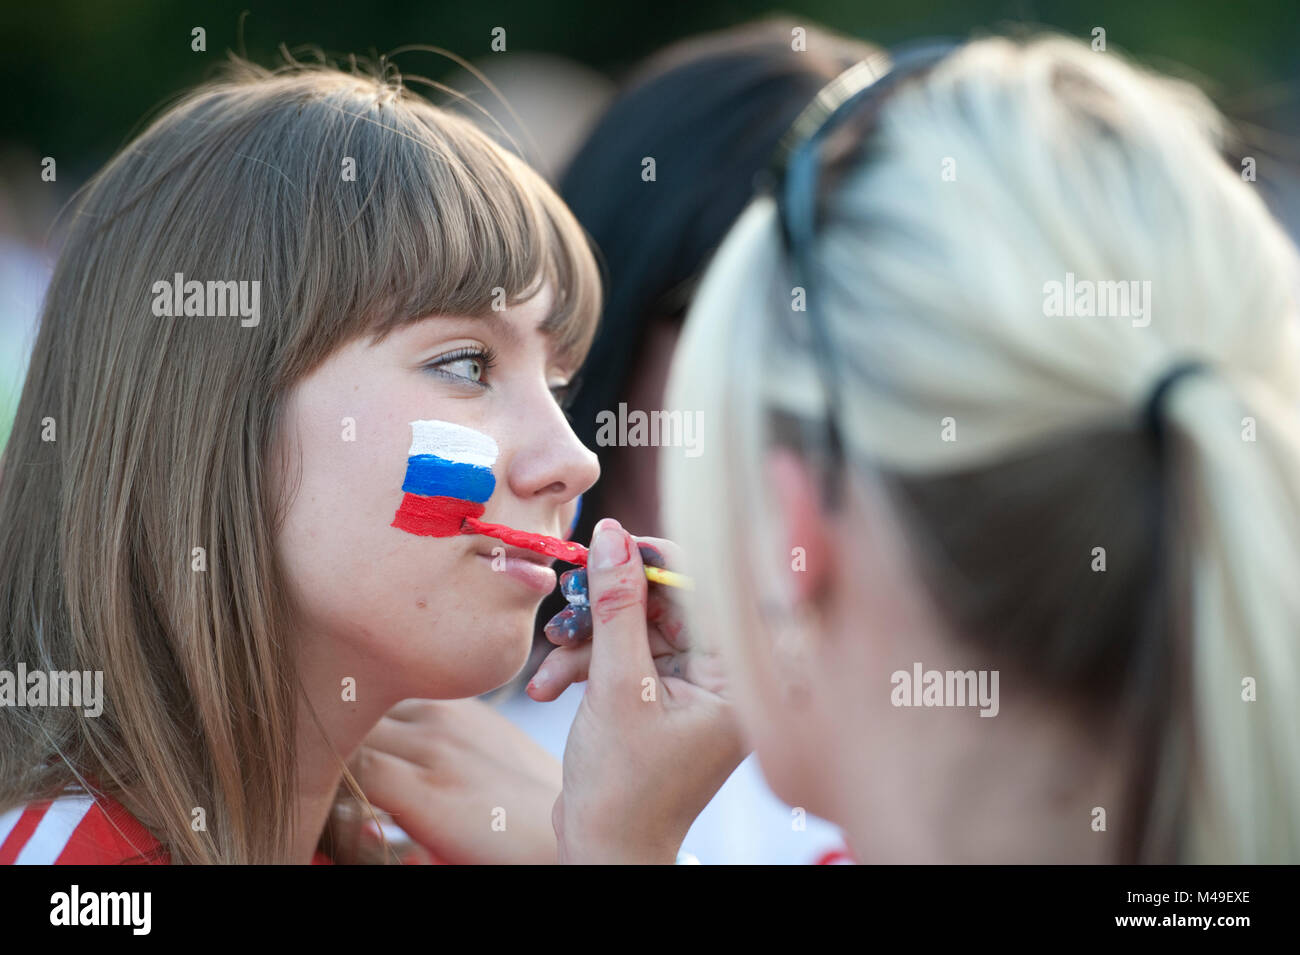 EURO Football 2012. National Stadium, Warsaw. Russia v Greece. Before the match, a Russian fan has her face painted - Stock Image